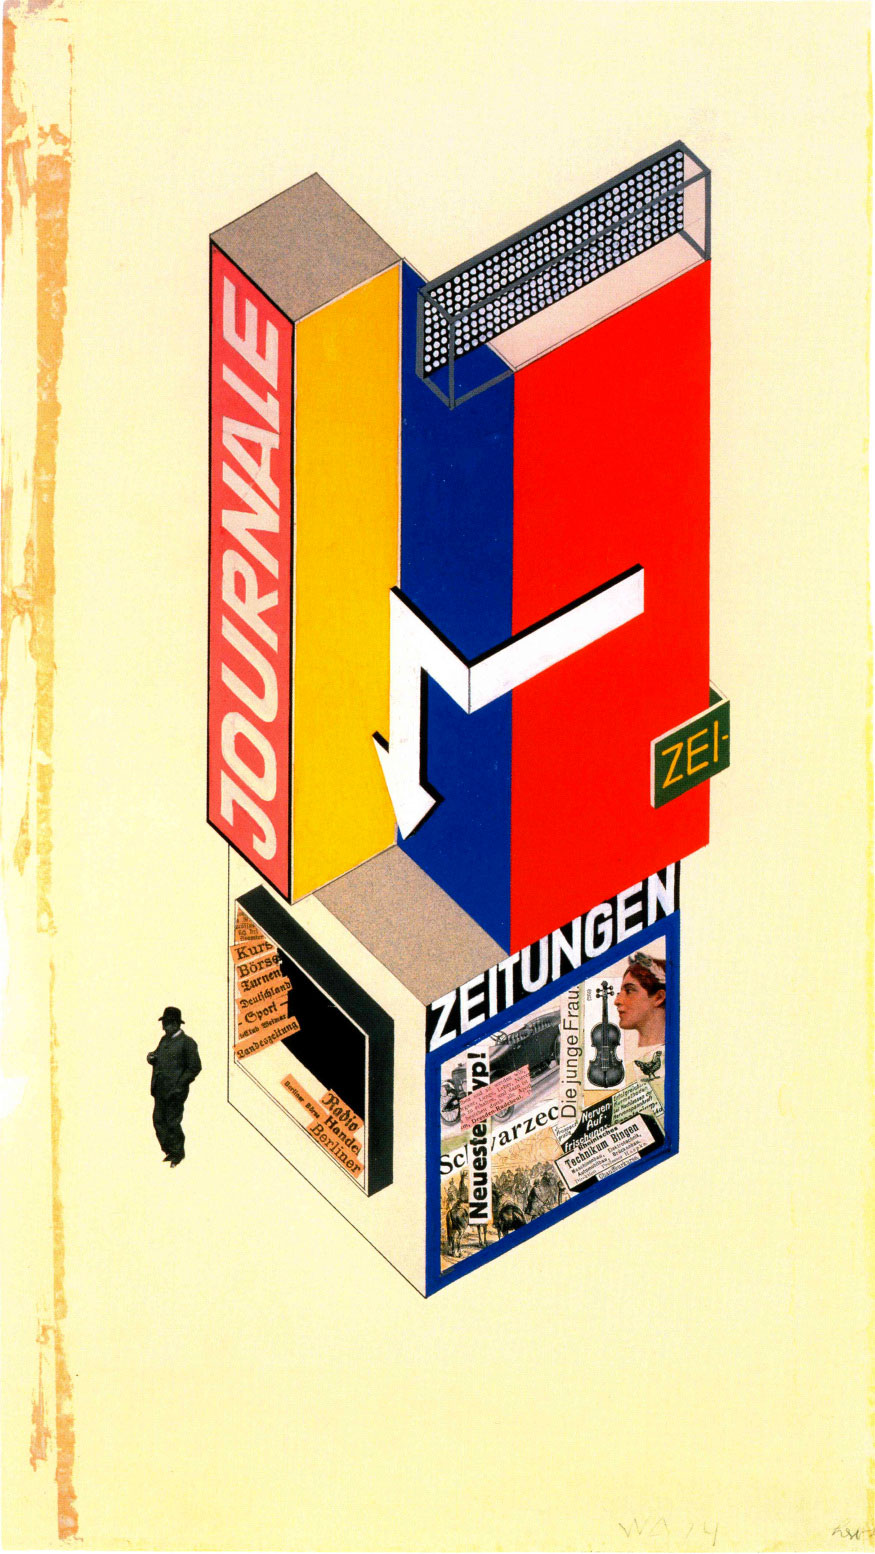 Herbert-Bayer-design-kiosque-a-journaux-1924